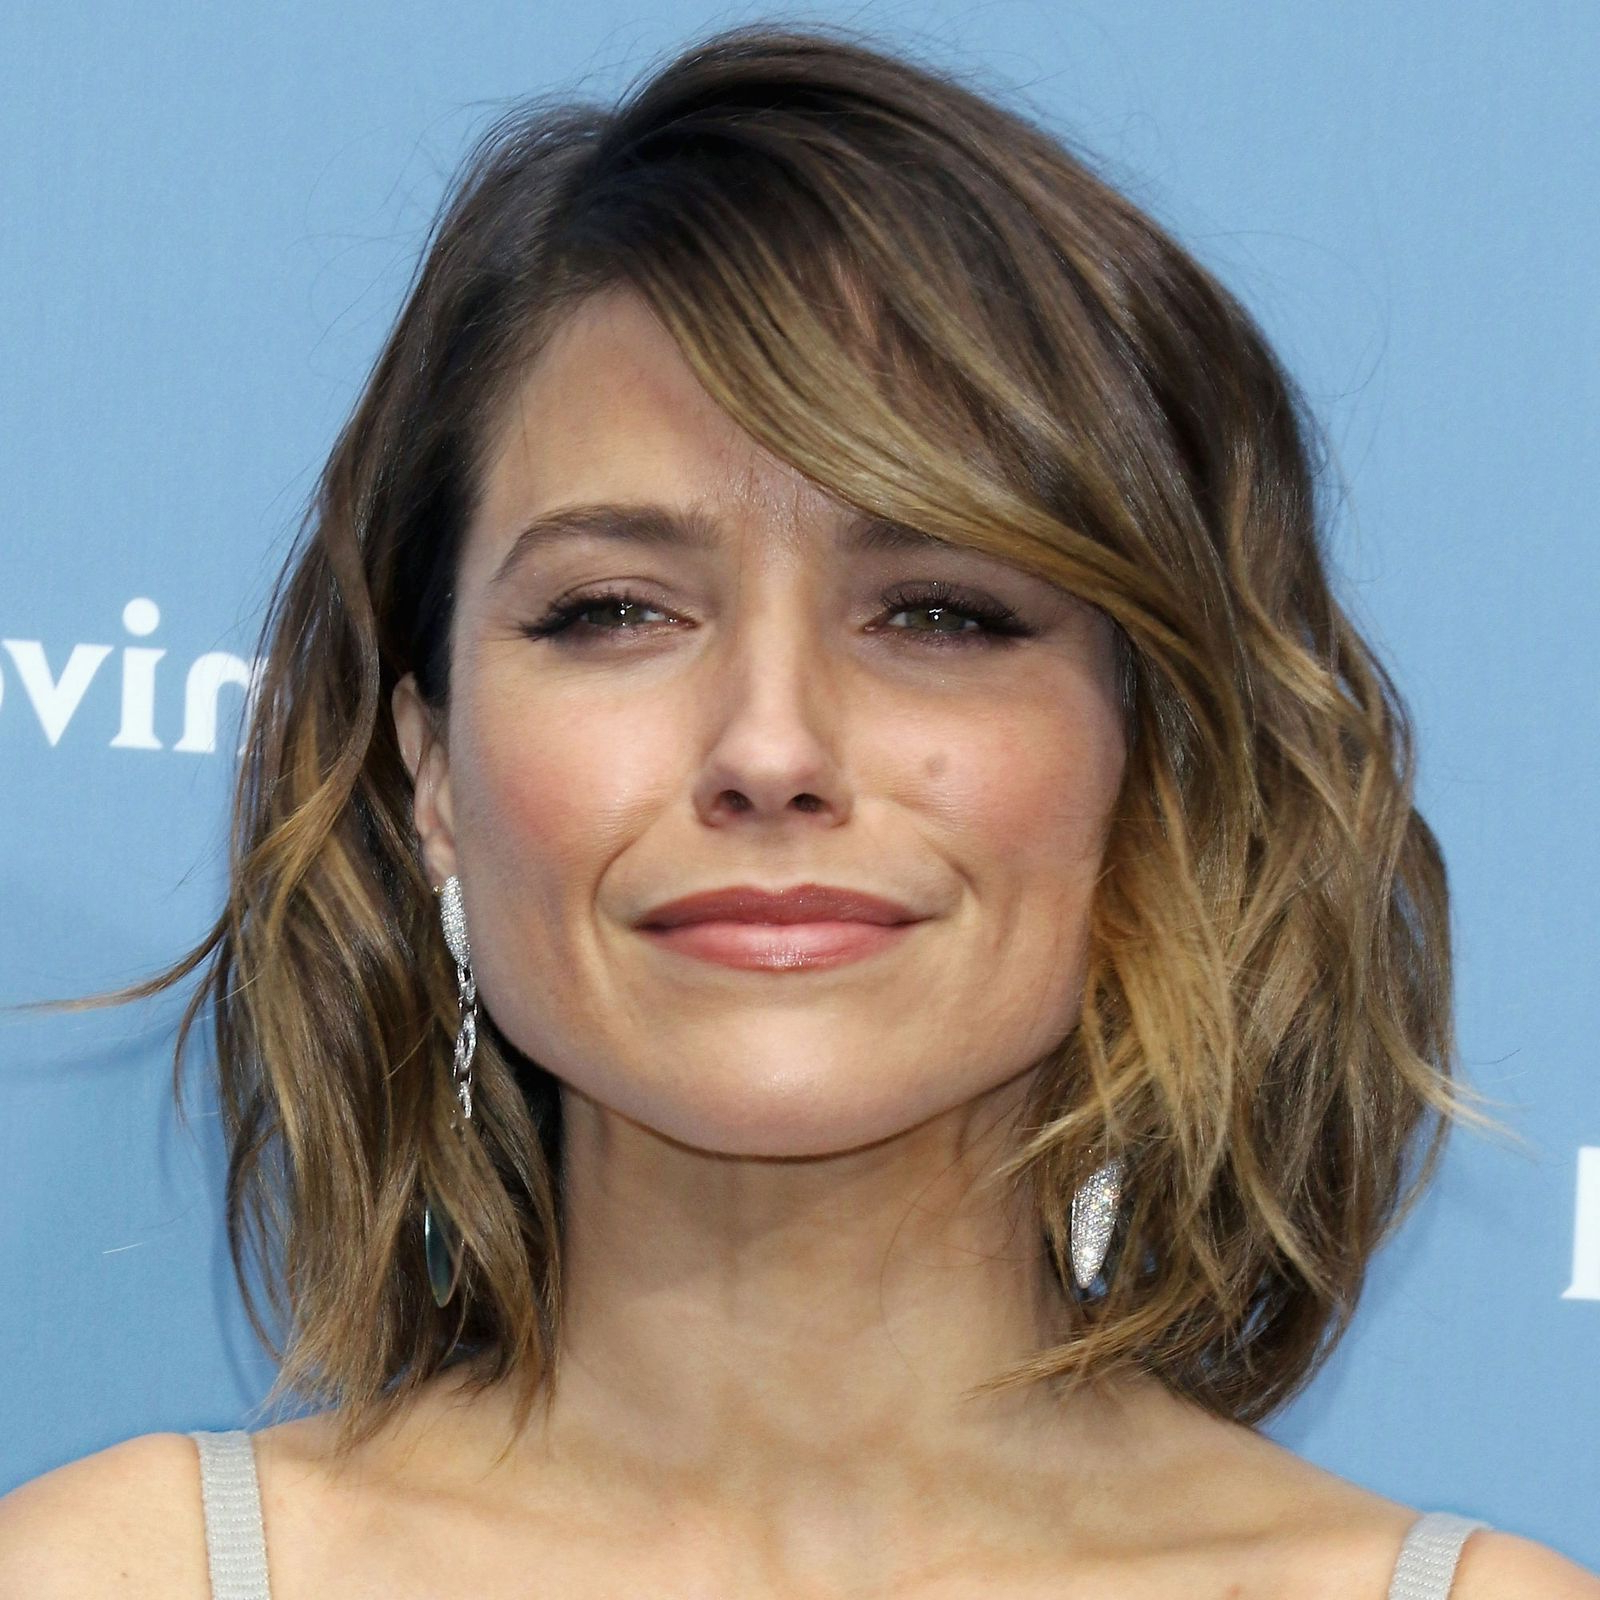 87 Cute Short Hairstyles—And How To Pull Them Off | Sophia Bush In Sophia Bush Short Hairstyles (View 2 of 25)